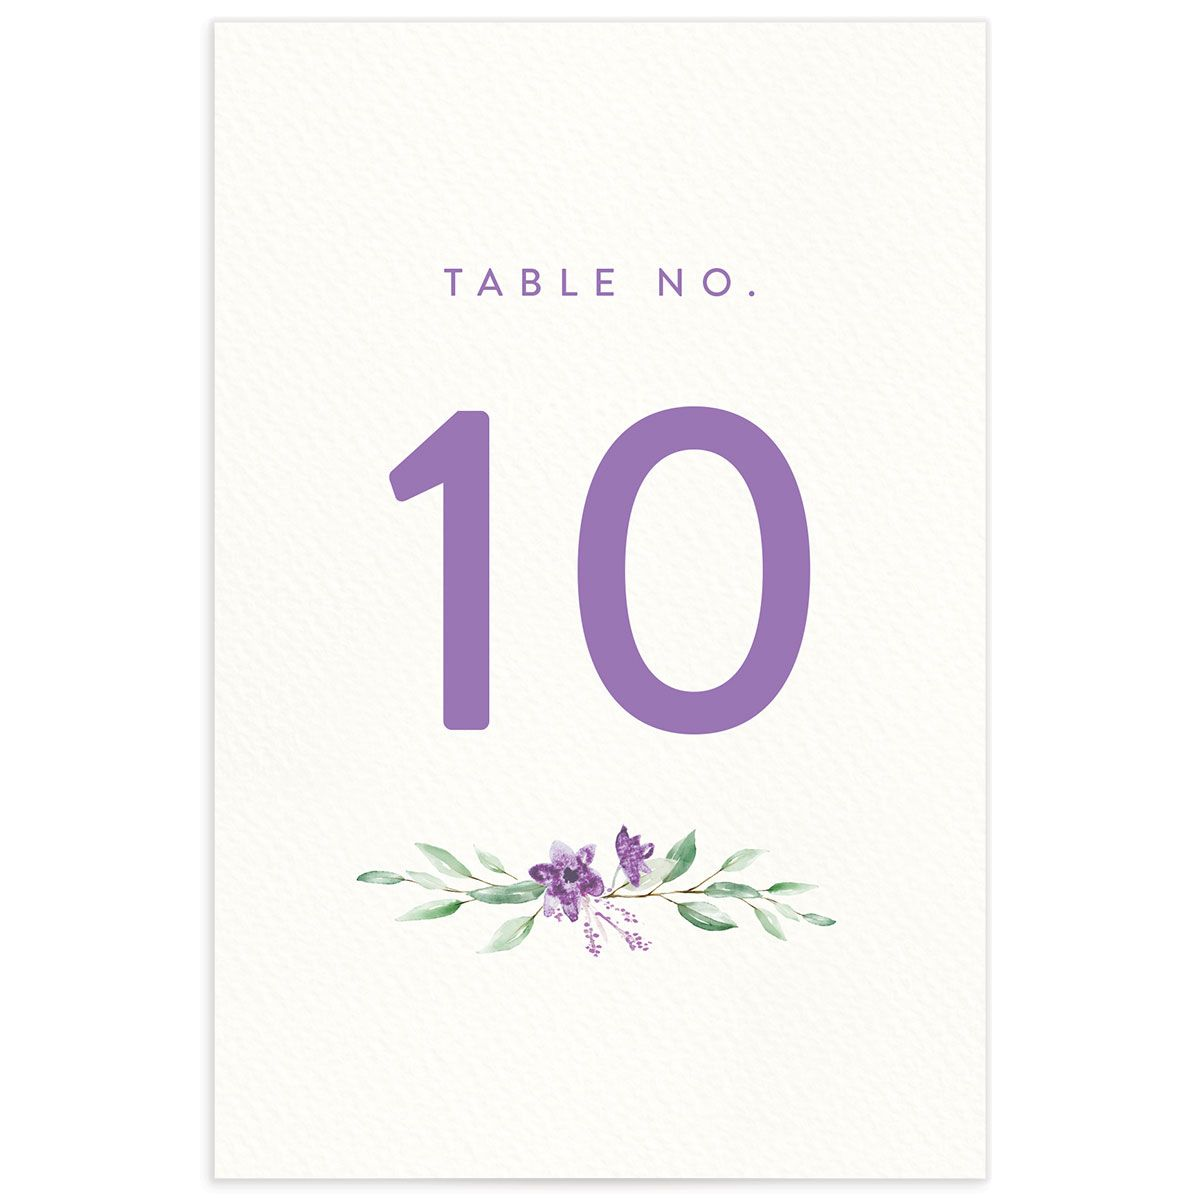 watercolor crest table numbers in purple